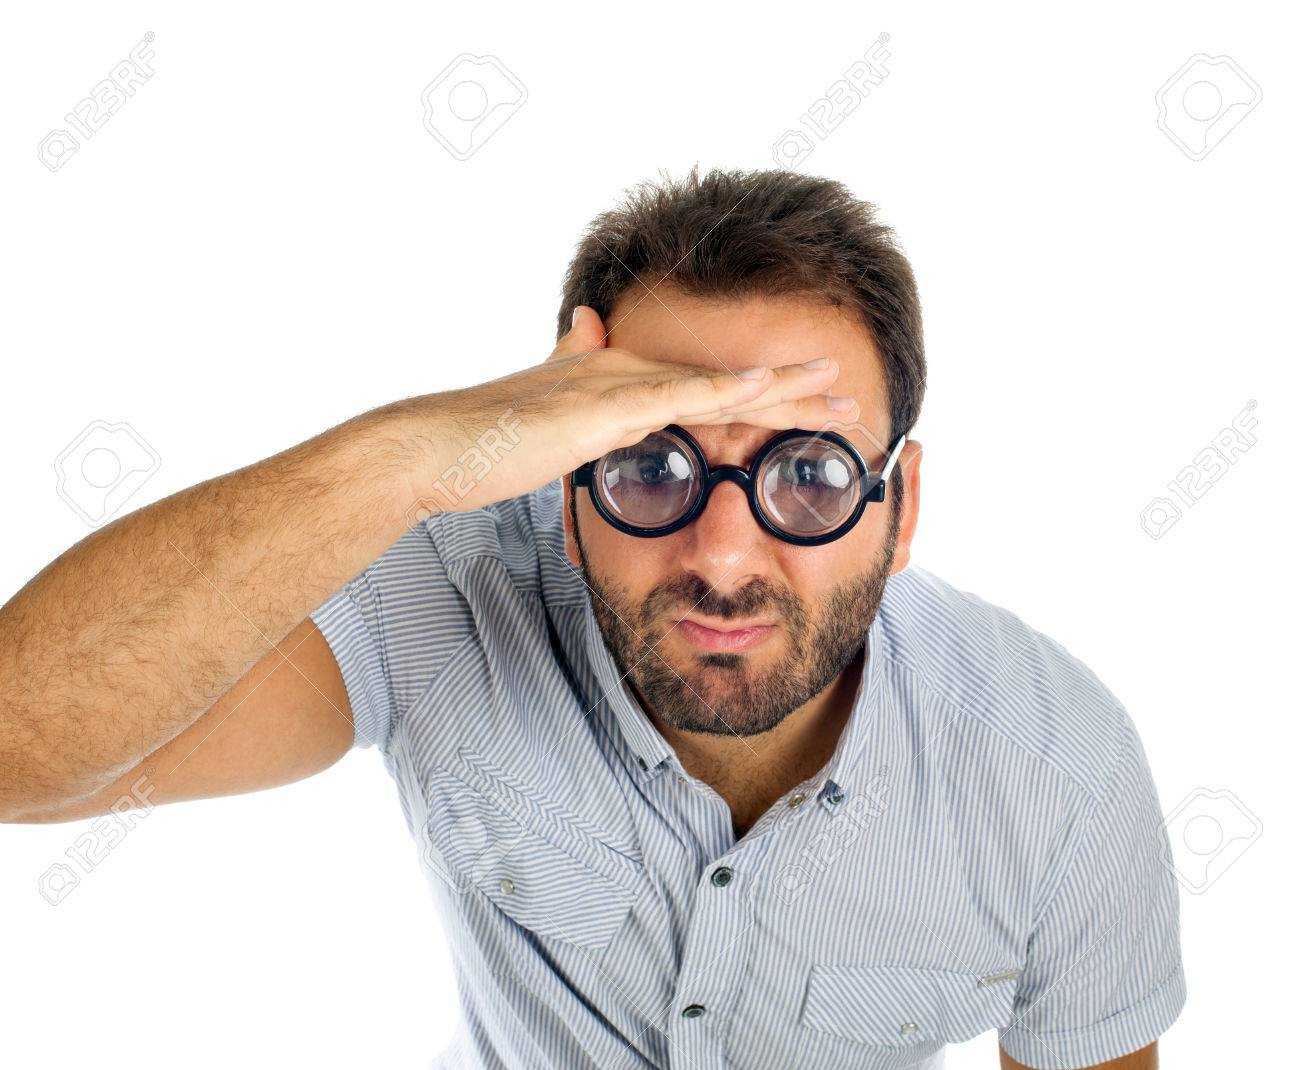 79cf2c8ebe Stock Photo - Young man with a surprised expression and thick glasses on white  background.